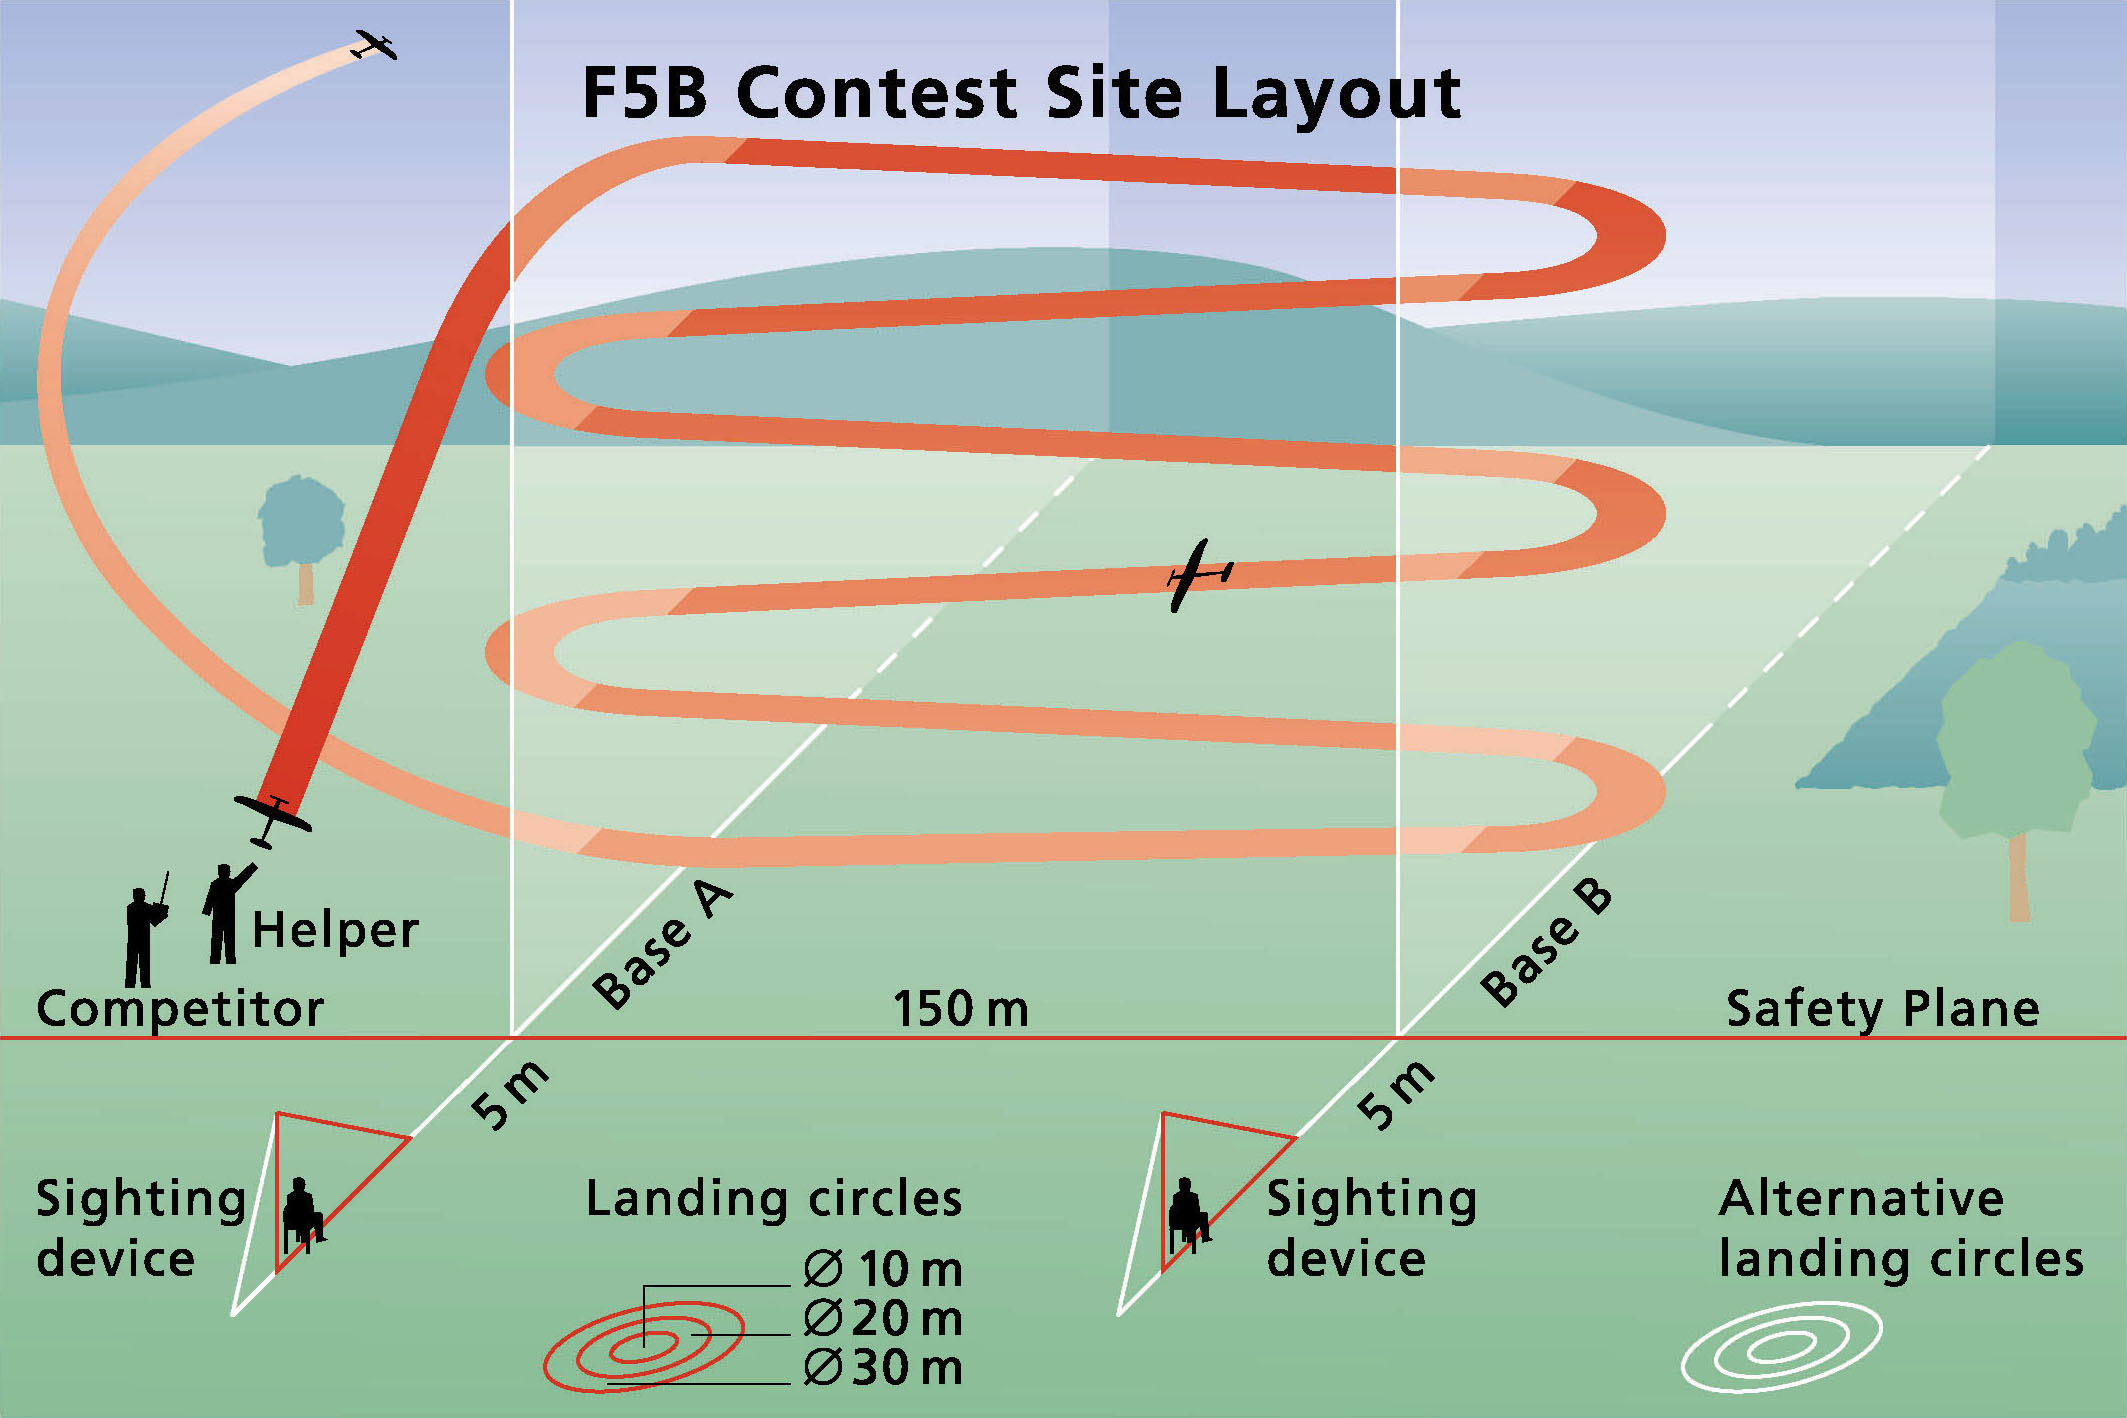 f5b_contest_site_layout_-_2011